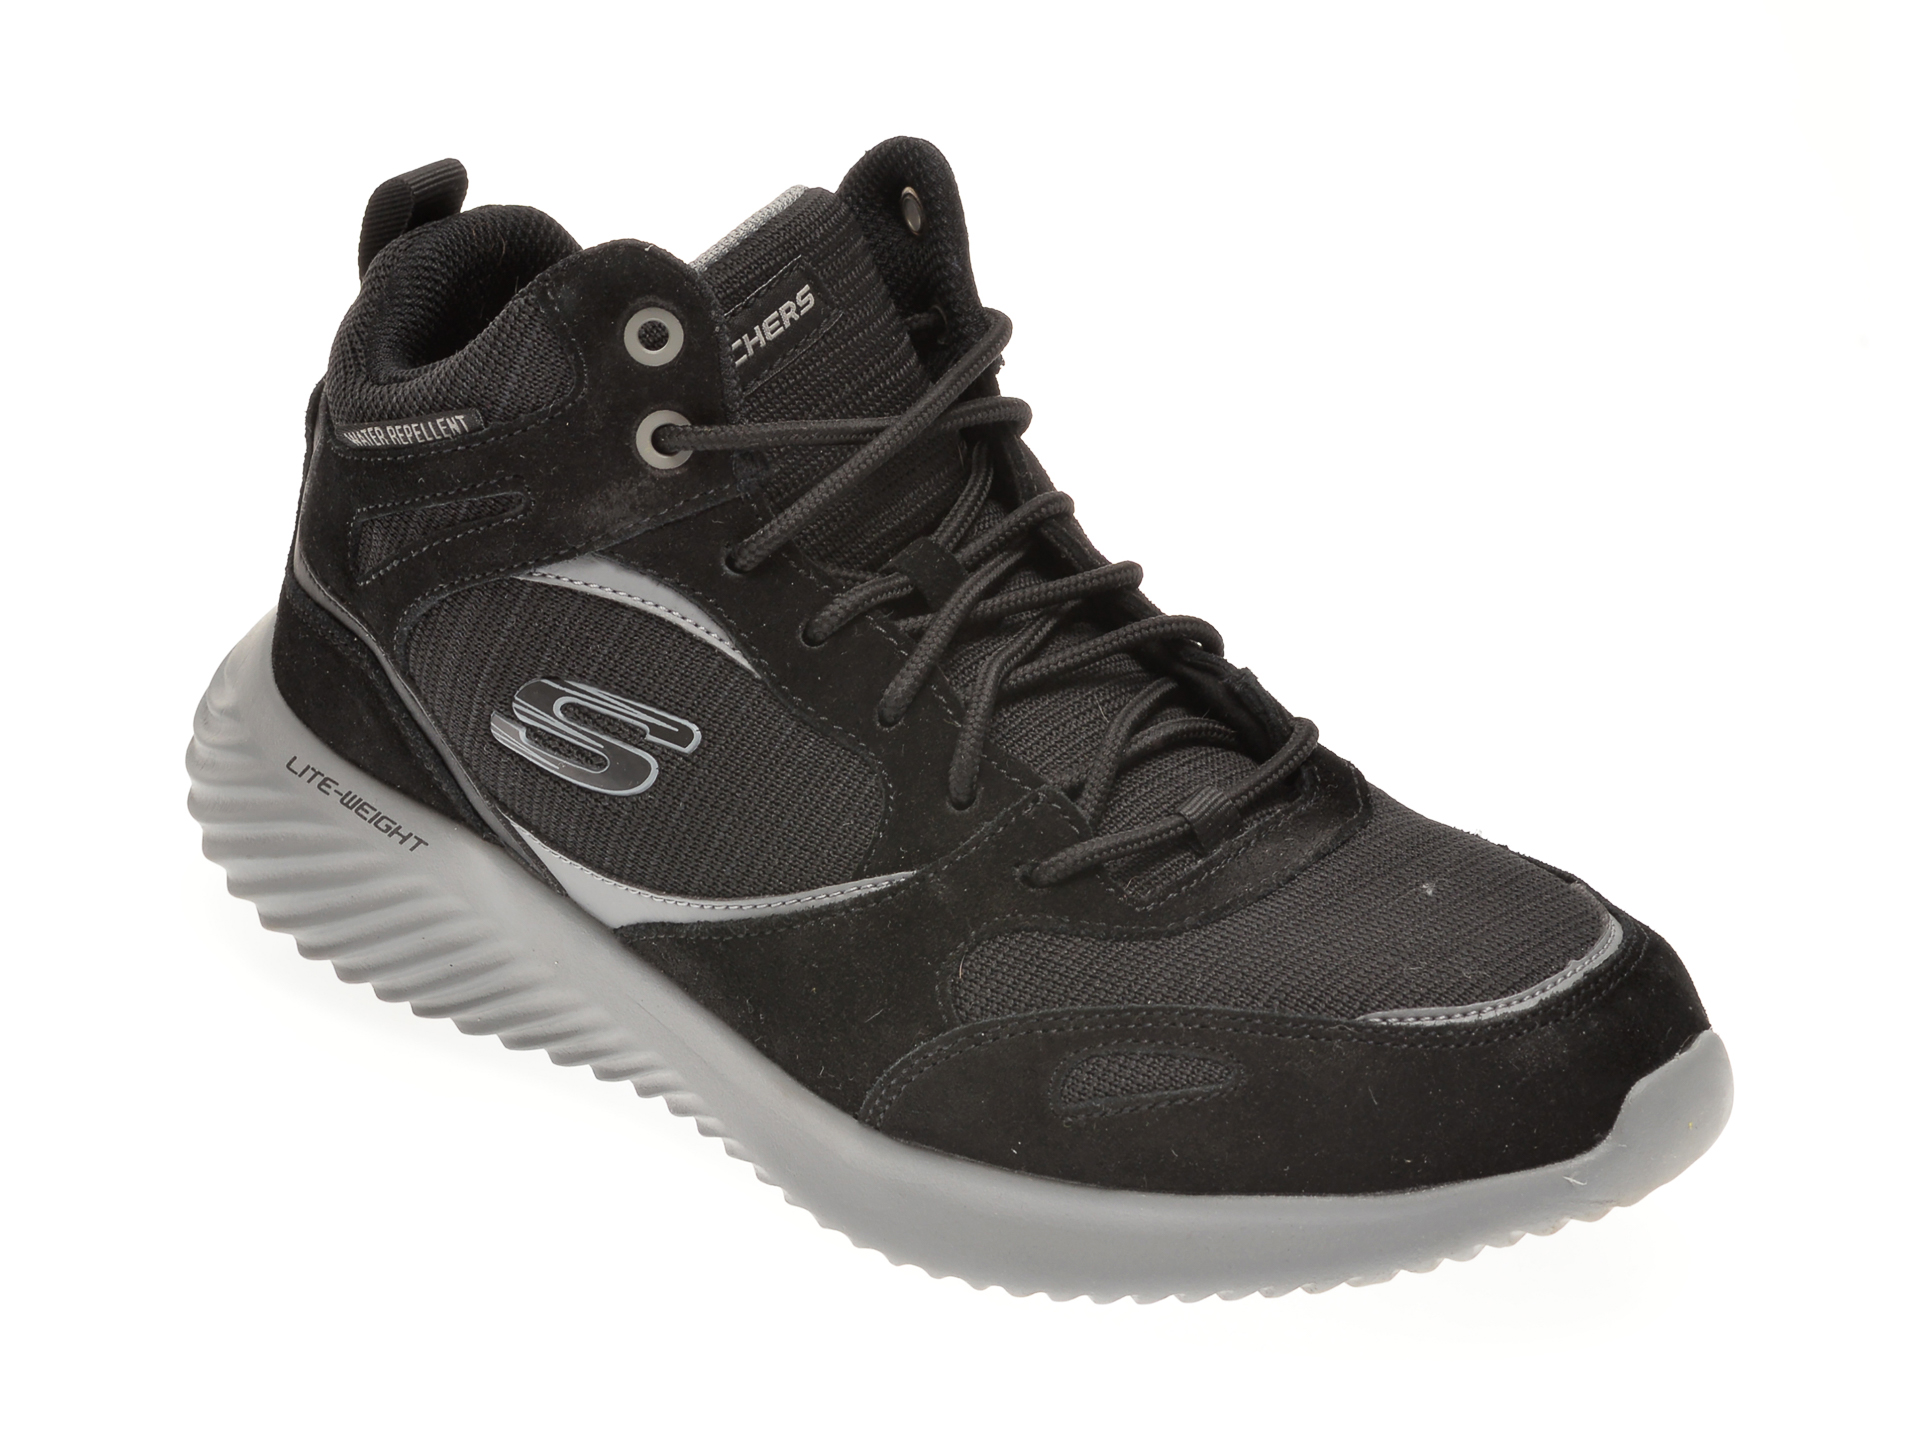 Ghete SKECHERS negre, BOUNDER HYRIDGE, din material textil si piele intoarsa imagine